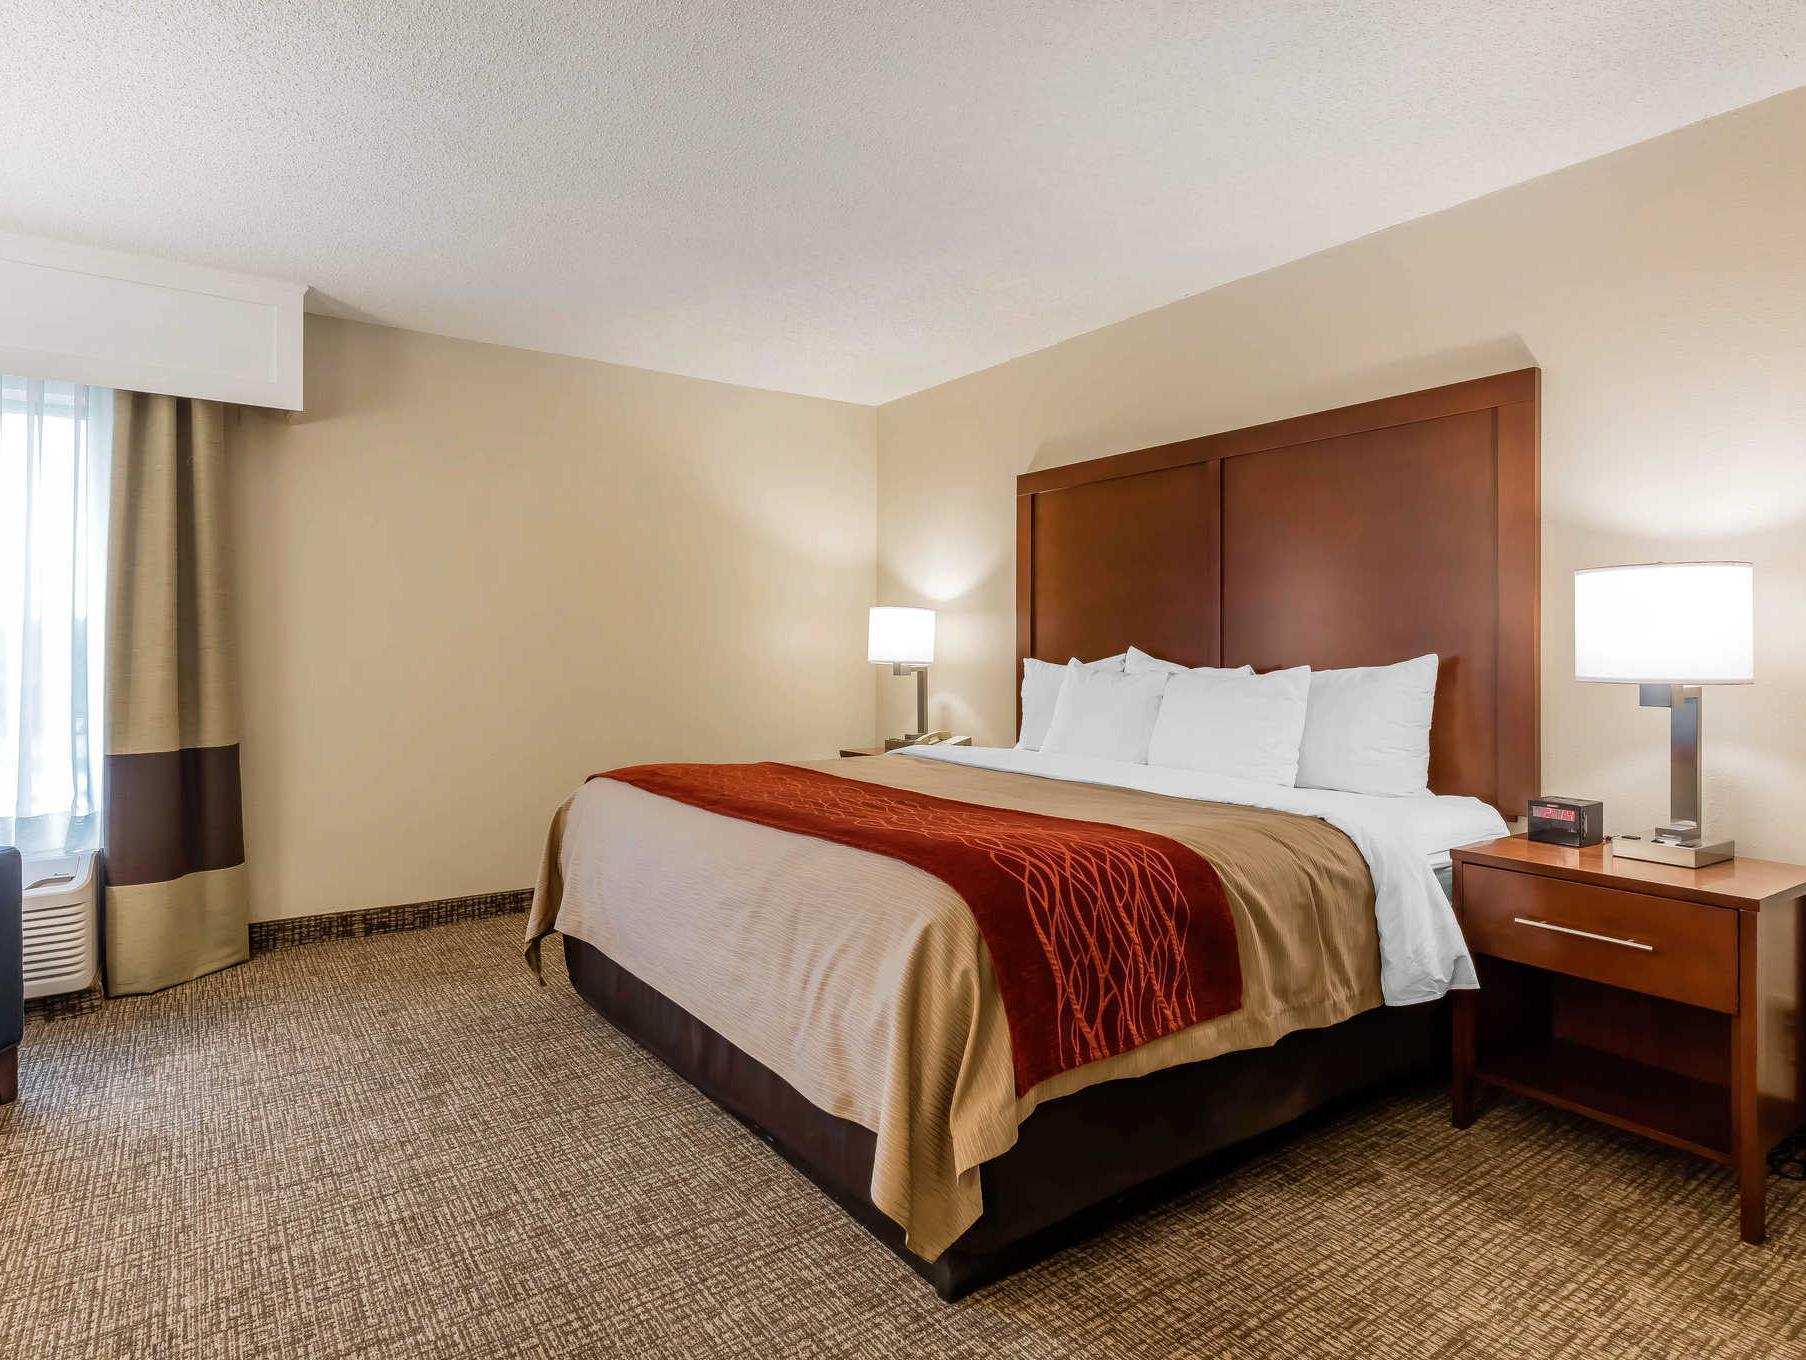 comfort pool inn stratus mcminnville hotels or se ave of suites comforter reservations z